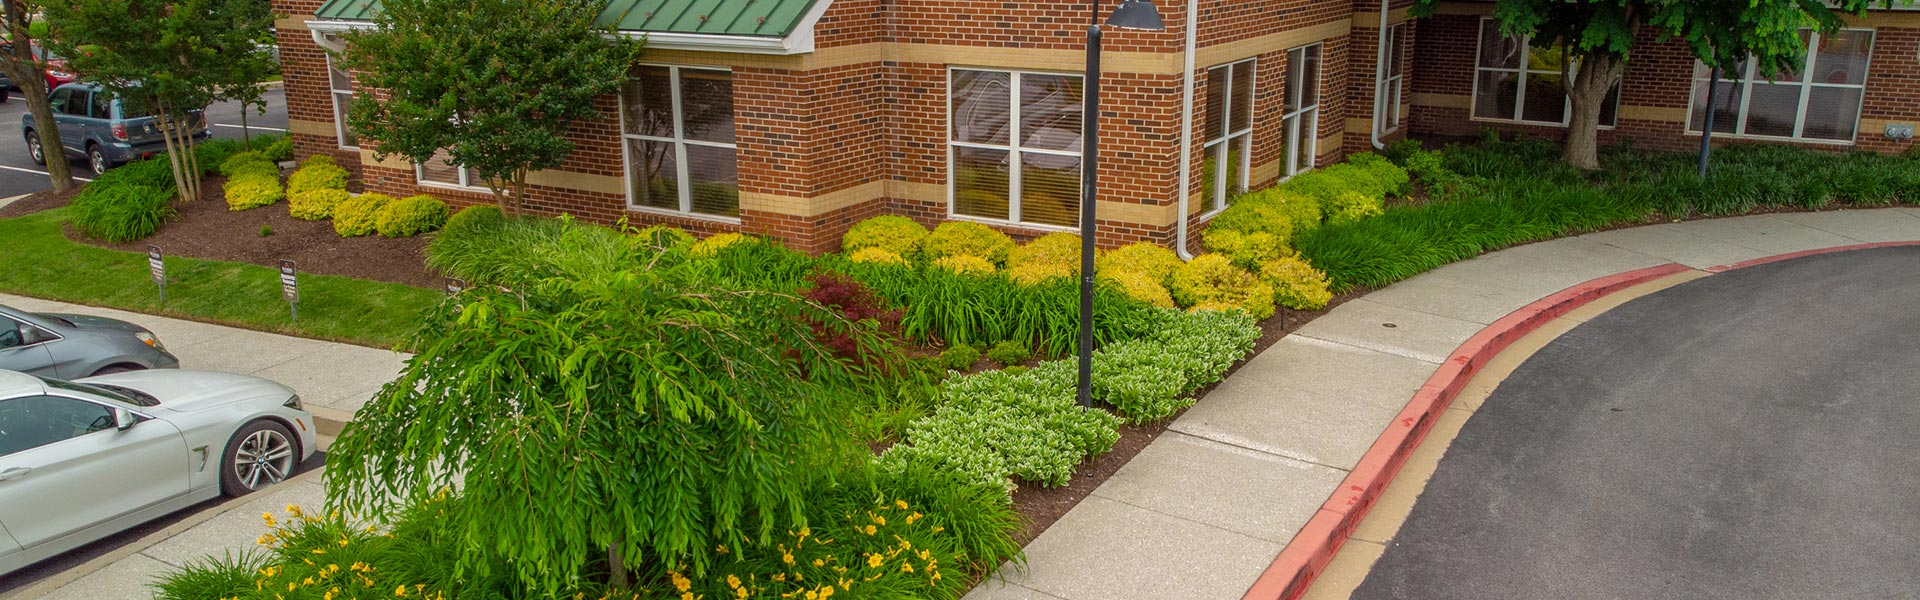 Commercial Landscape Maintenance in Ellicott City, Clarksville, MD